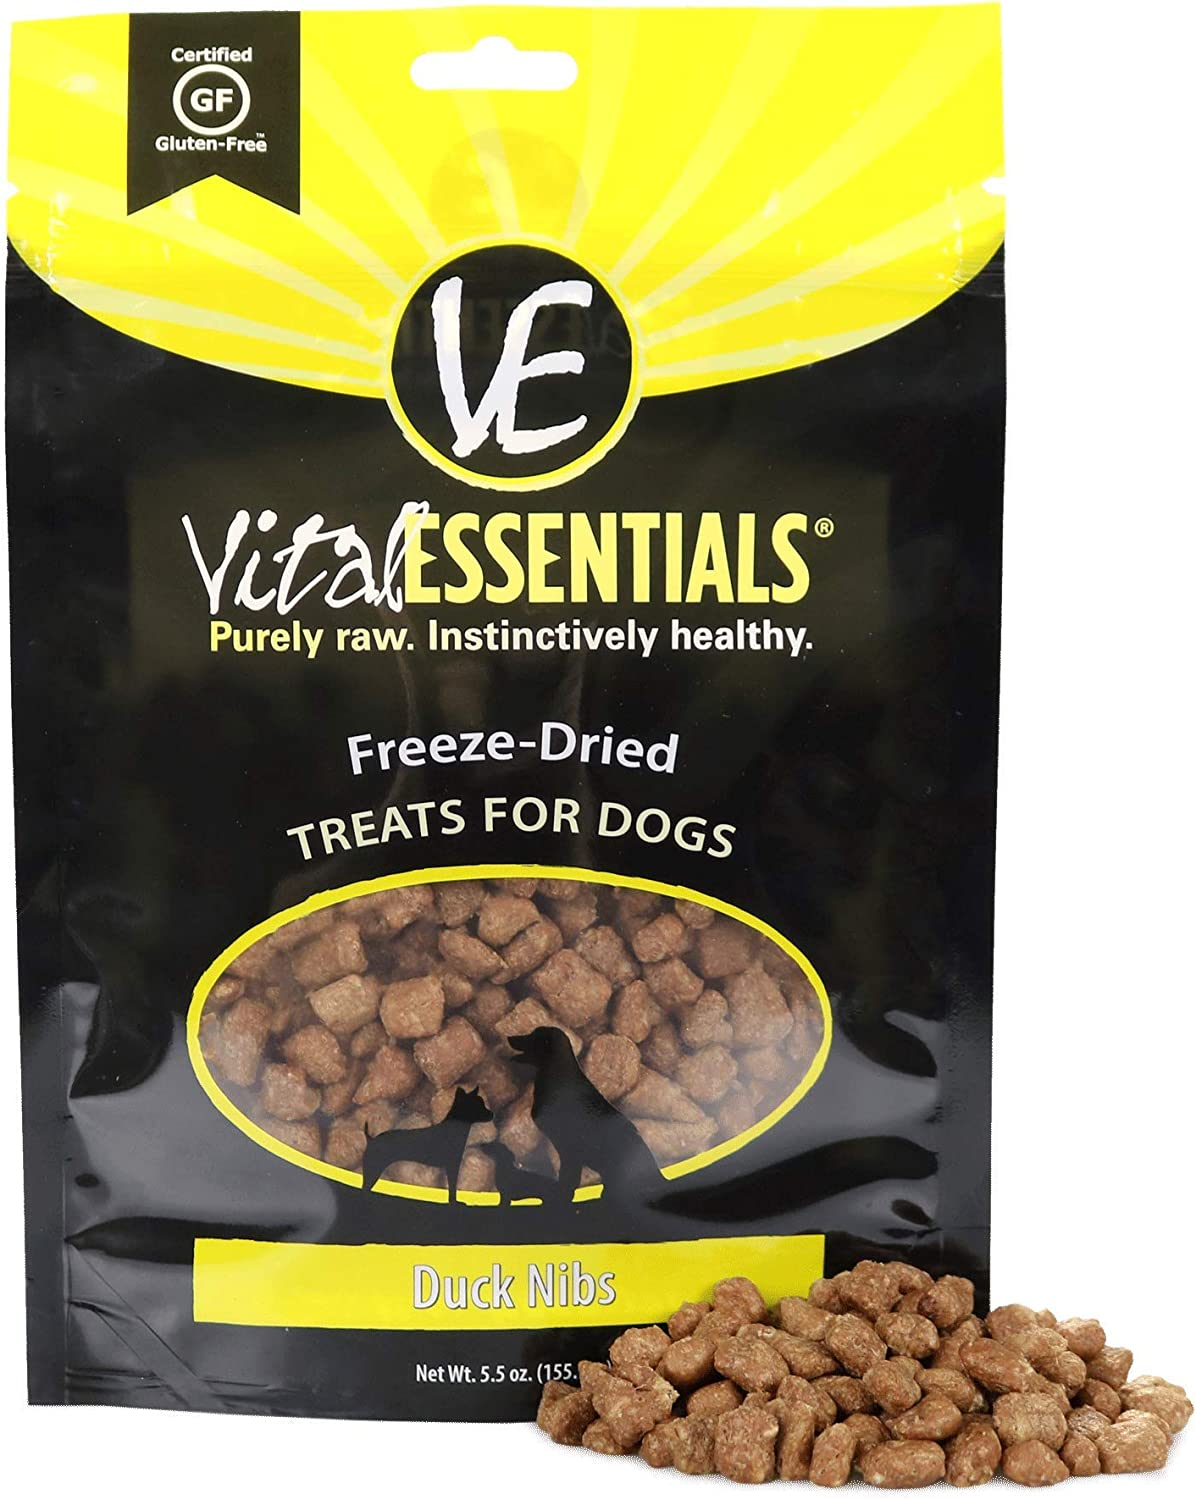 Vital Essentials Freeze-Dried Duck Nibs Family Size Dog Treats - All Natural - Made & Sourced in USA - Grain Free - 5.5 oz Resealable Pouch